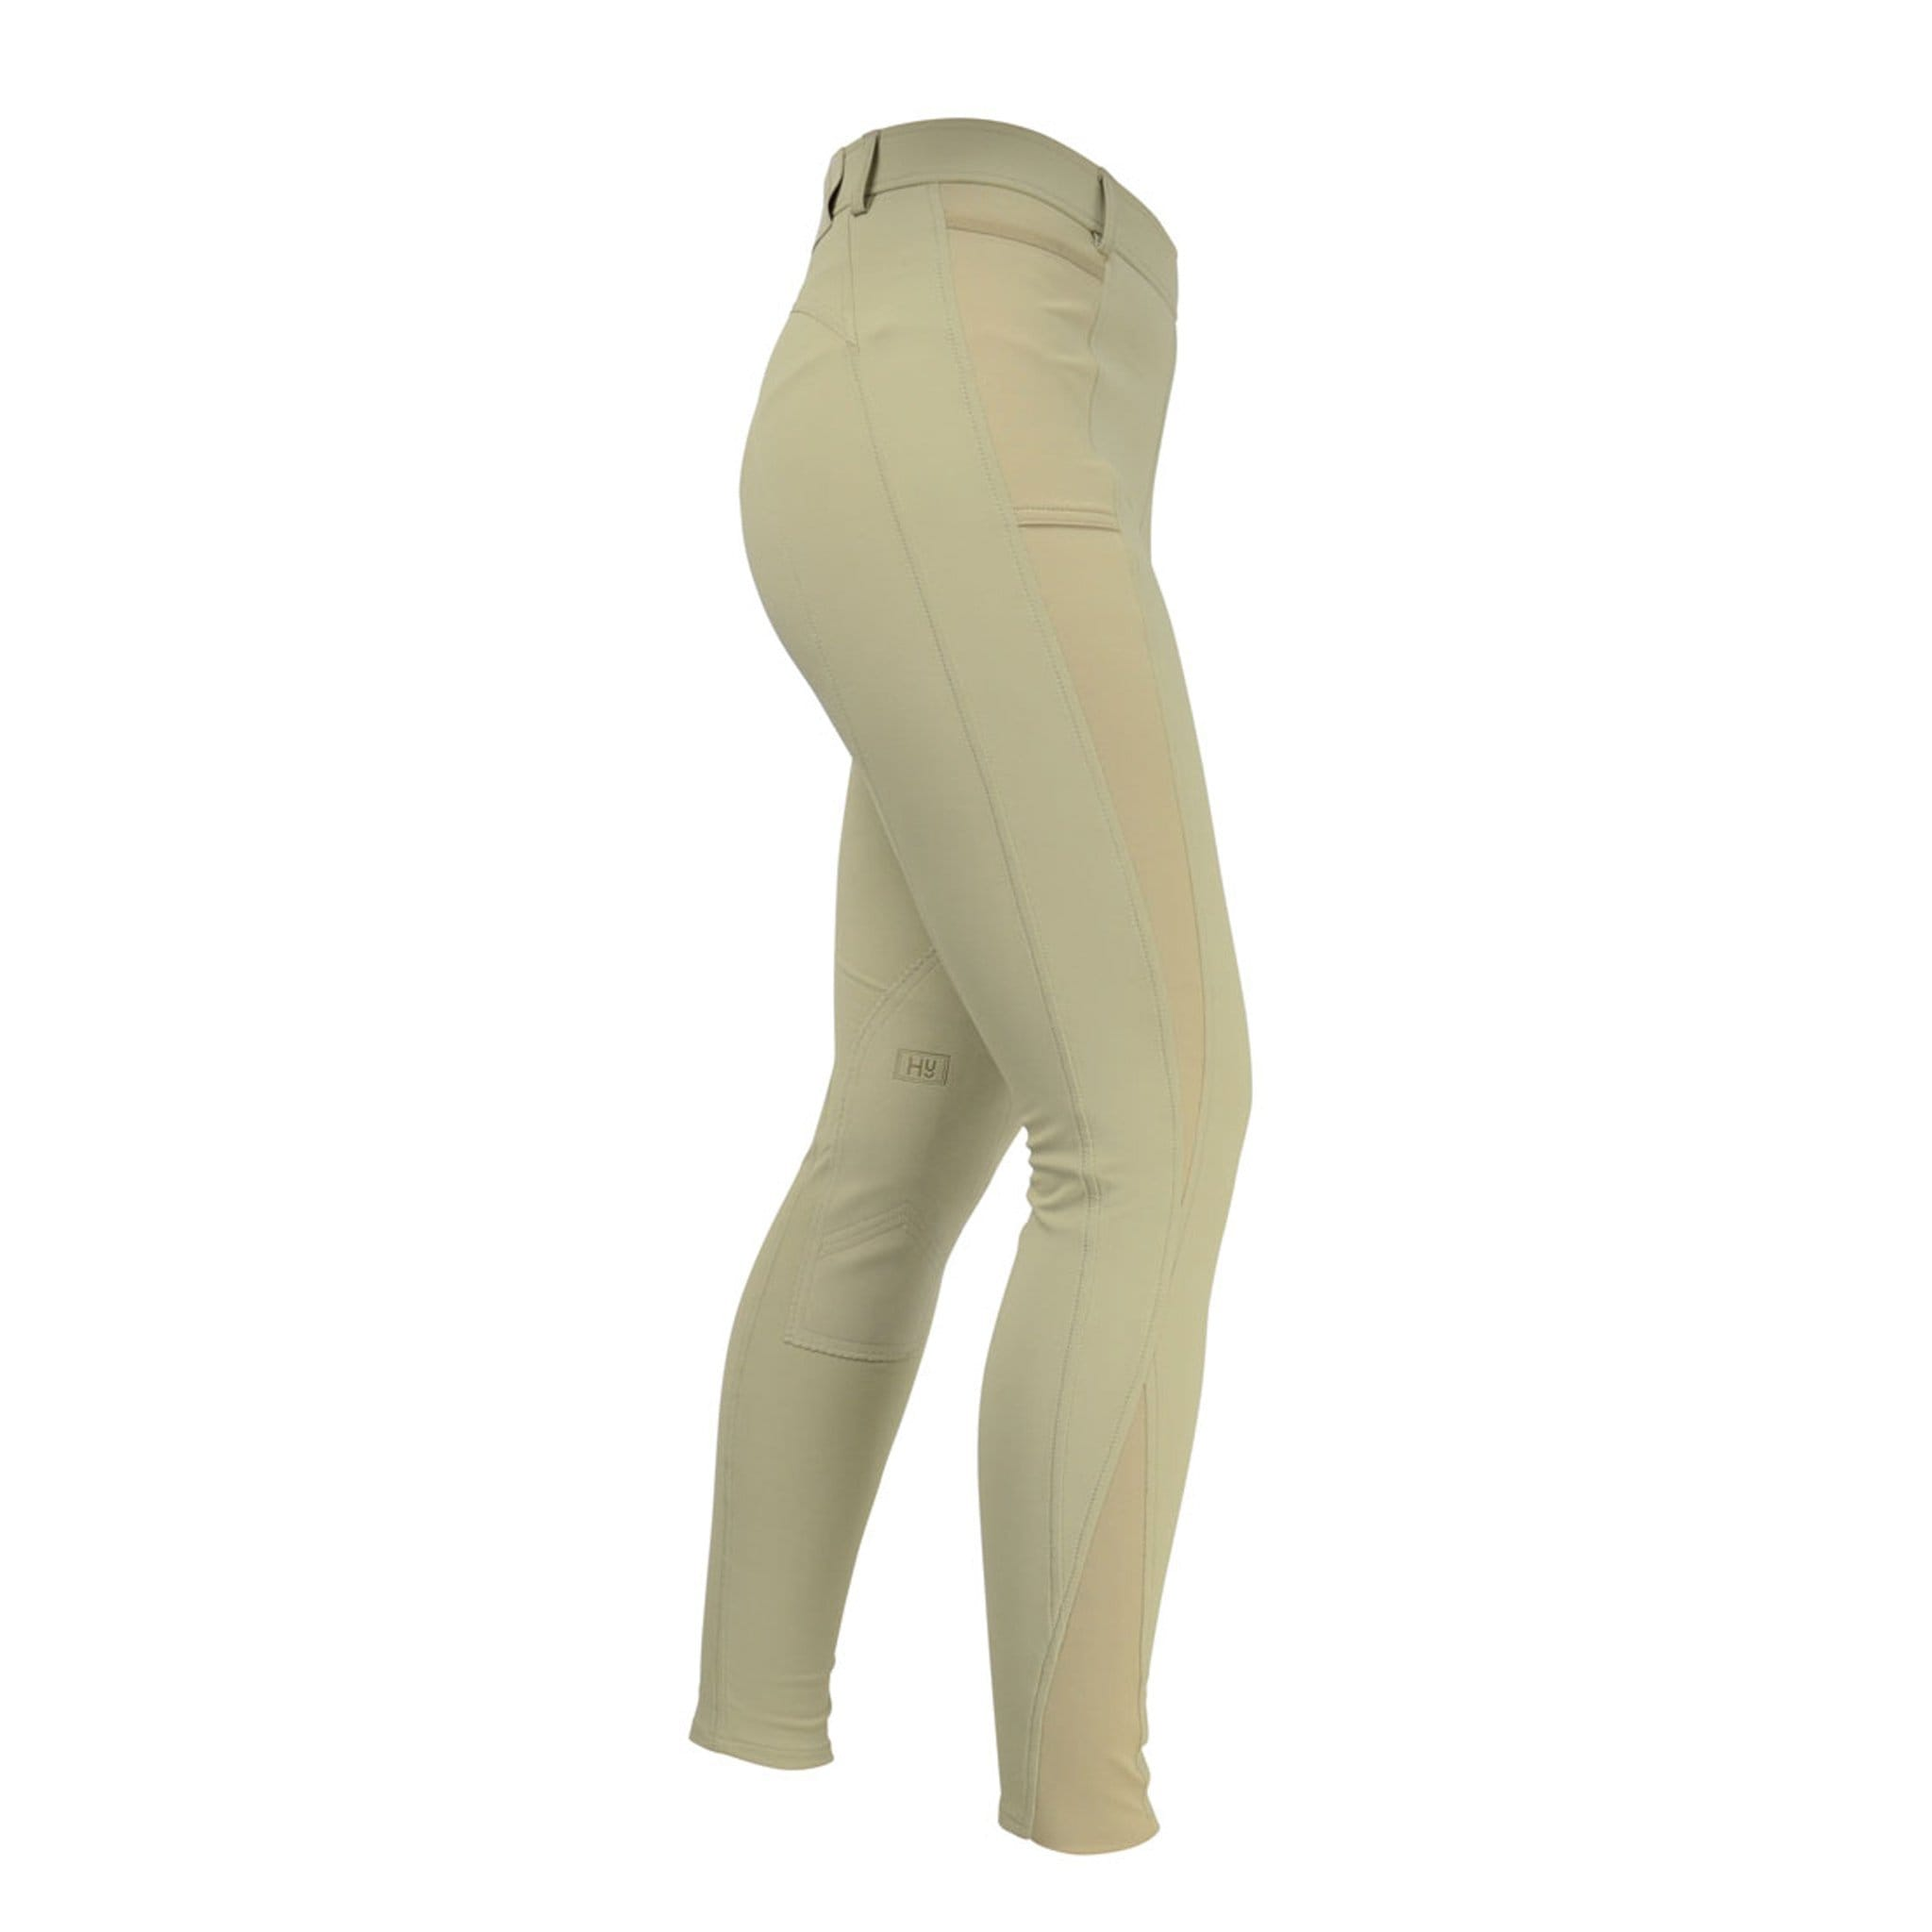 HyPERFORMANCE Motion Alos Knee Patch Riding Tights 14890 Beige Right SIde